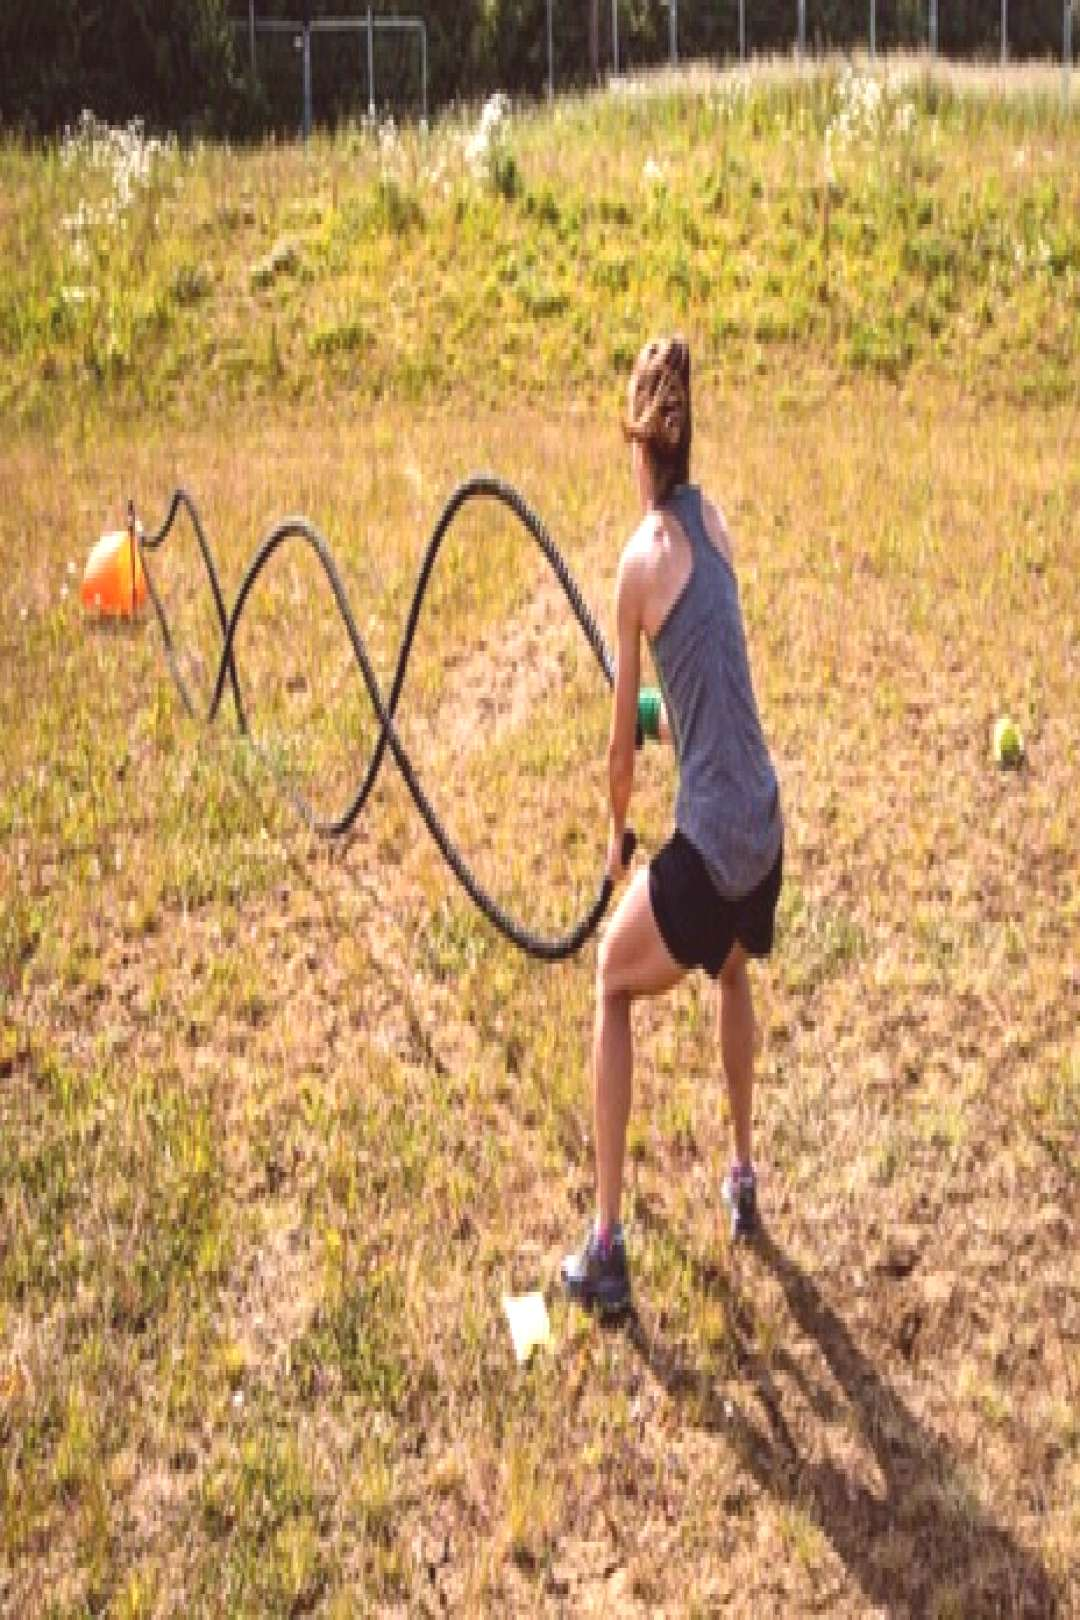 Natalie Murphy on June 07 2020 one or more people outdoor and nat